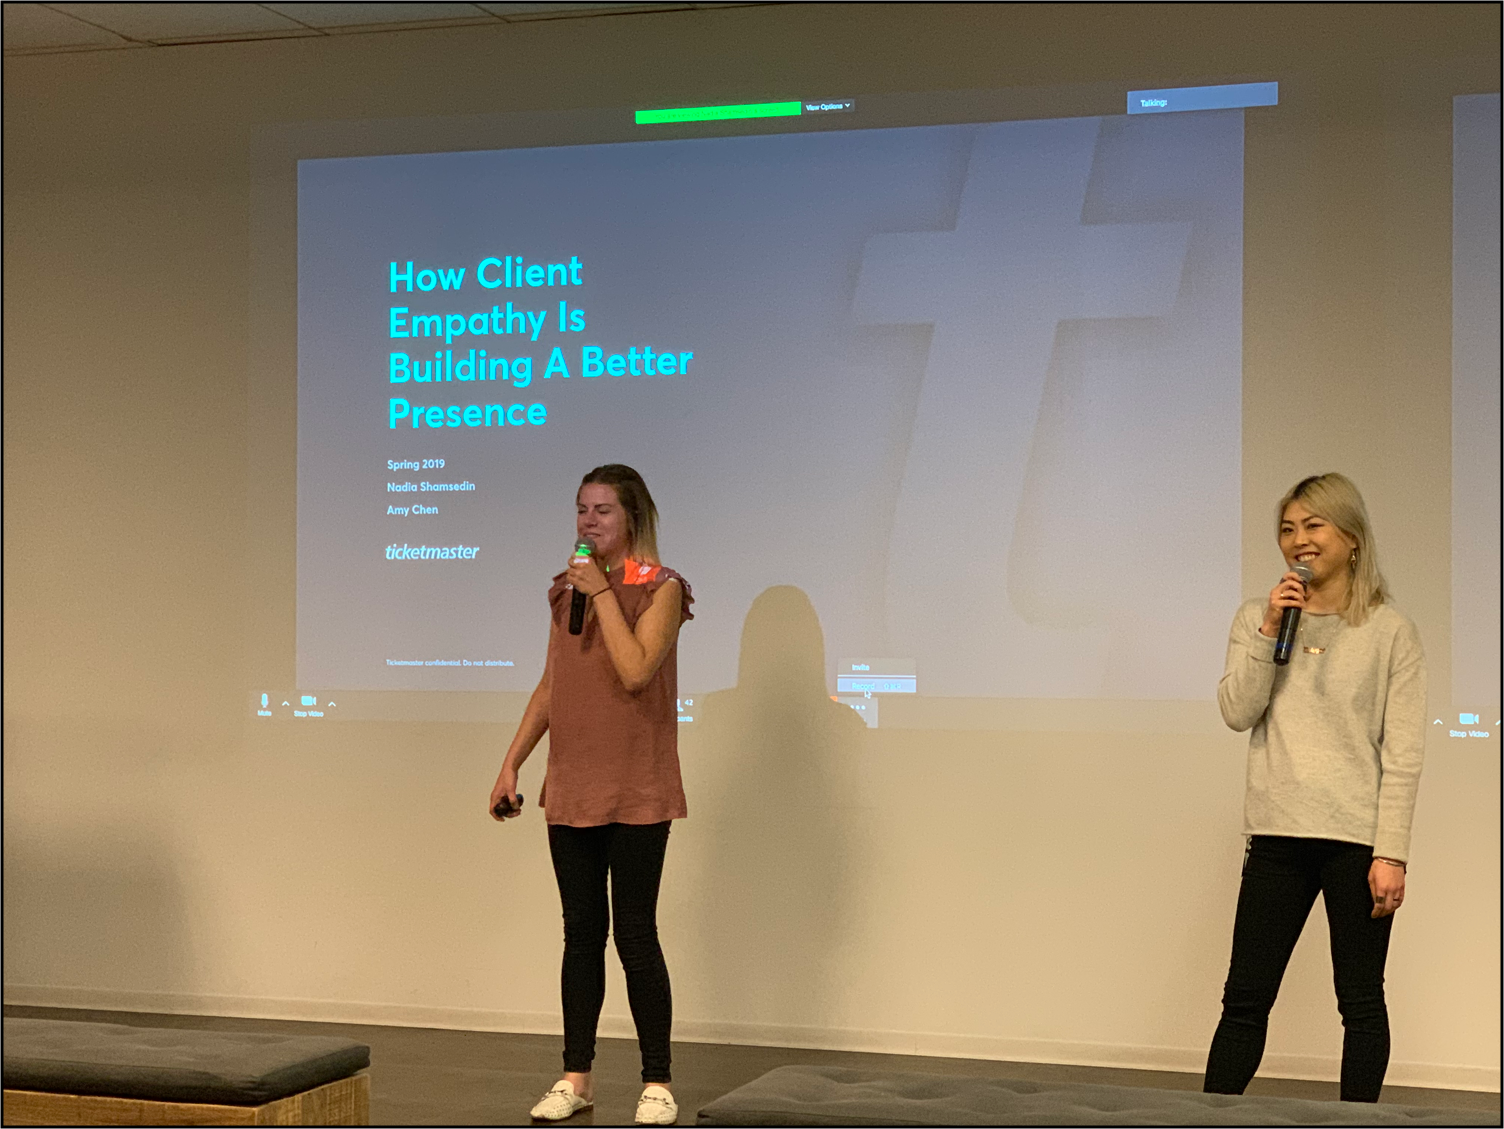 """A natural follow-up to the presentation in June 2018, we did another company-wide presentation in April 2019 entitled """"How Client Empathy is Building A Better Presence."""" Yes, I am wearing the same blouse as I did in the original presentation."""